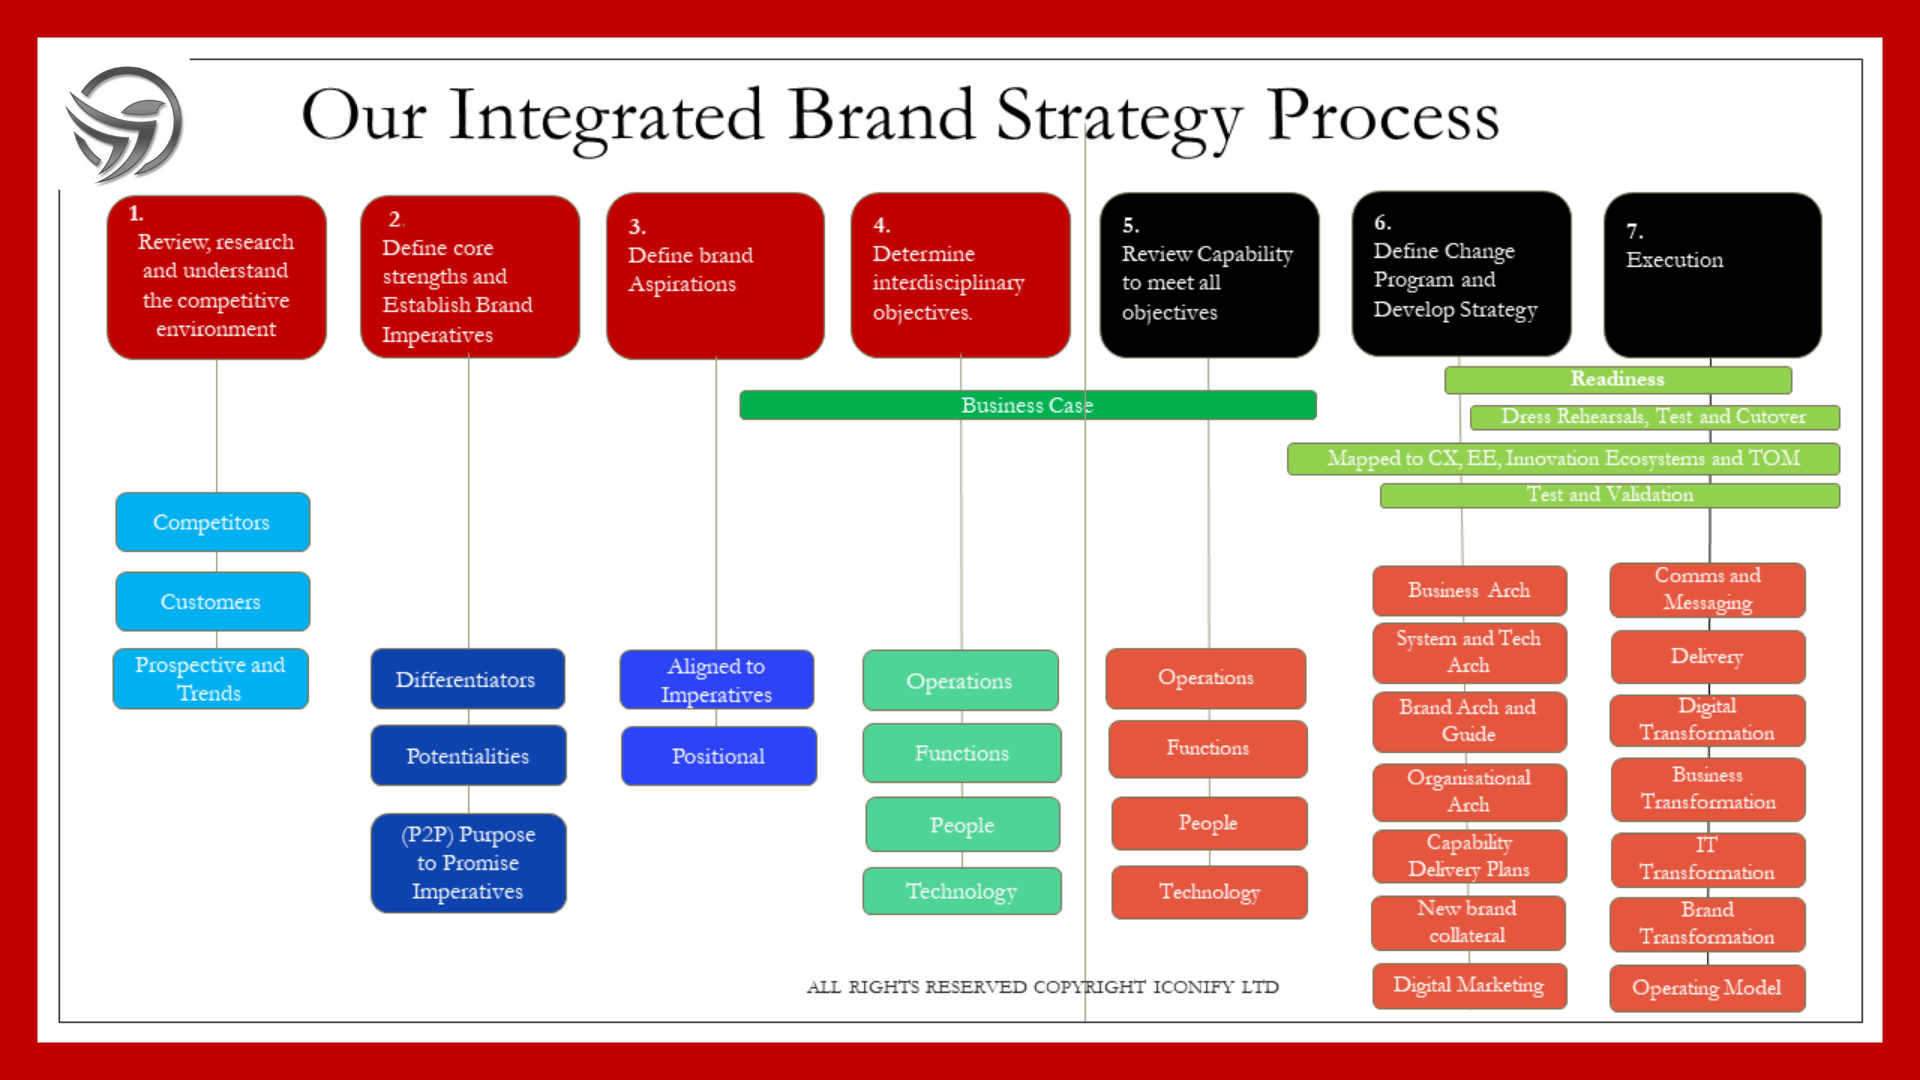 The Ultimate Brand Strategy - the number one best brand strategy for decision makers is an Integrated Brand Strategy Process